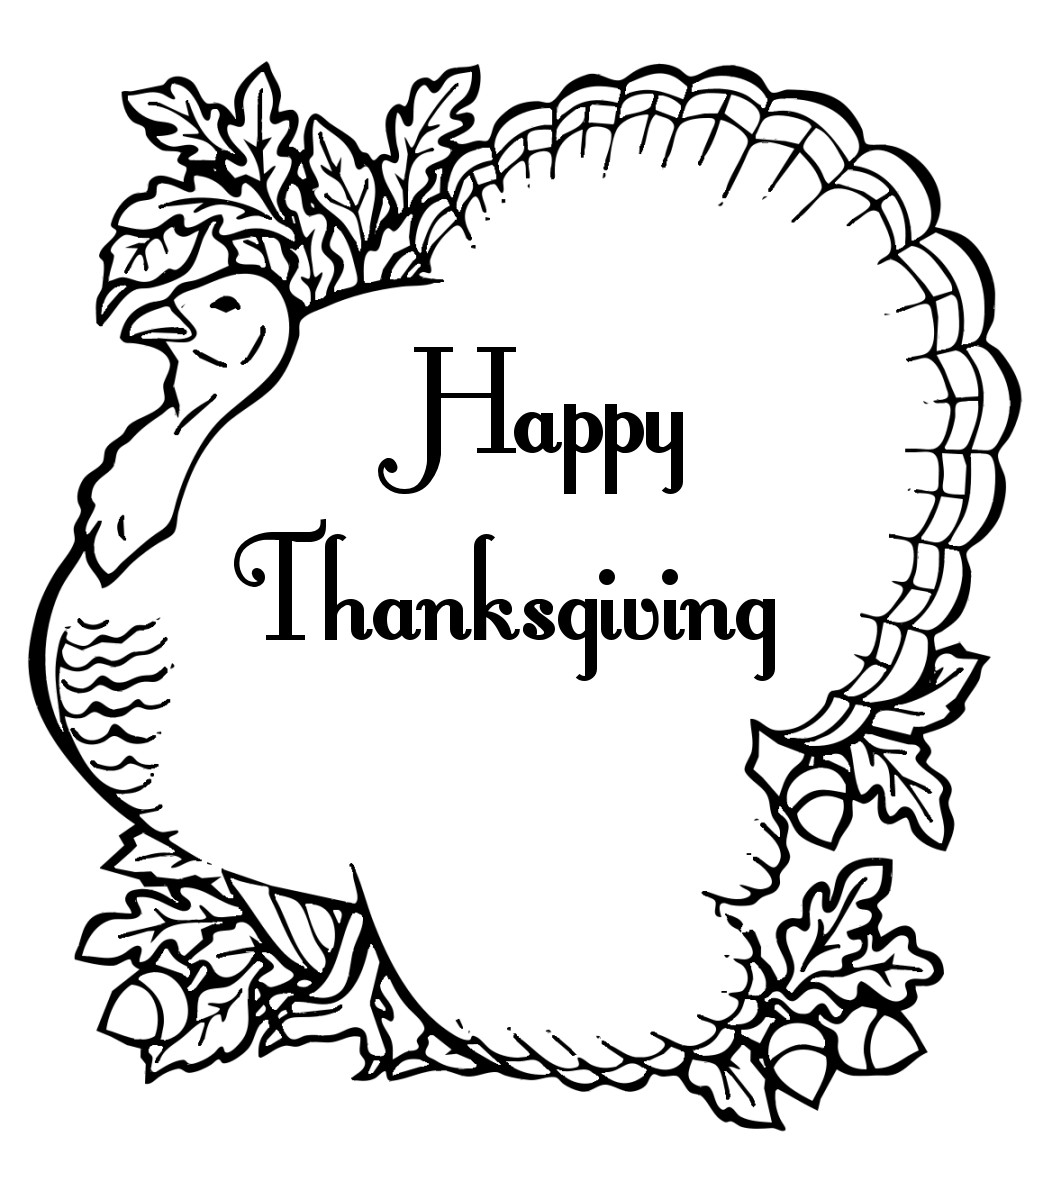 Thanksgiving Coloring Pages For Adults Free  Free Printable Thanksgiving Coloring Pages For Kids